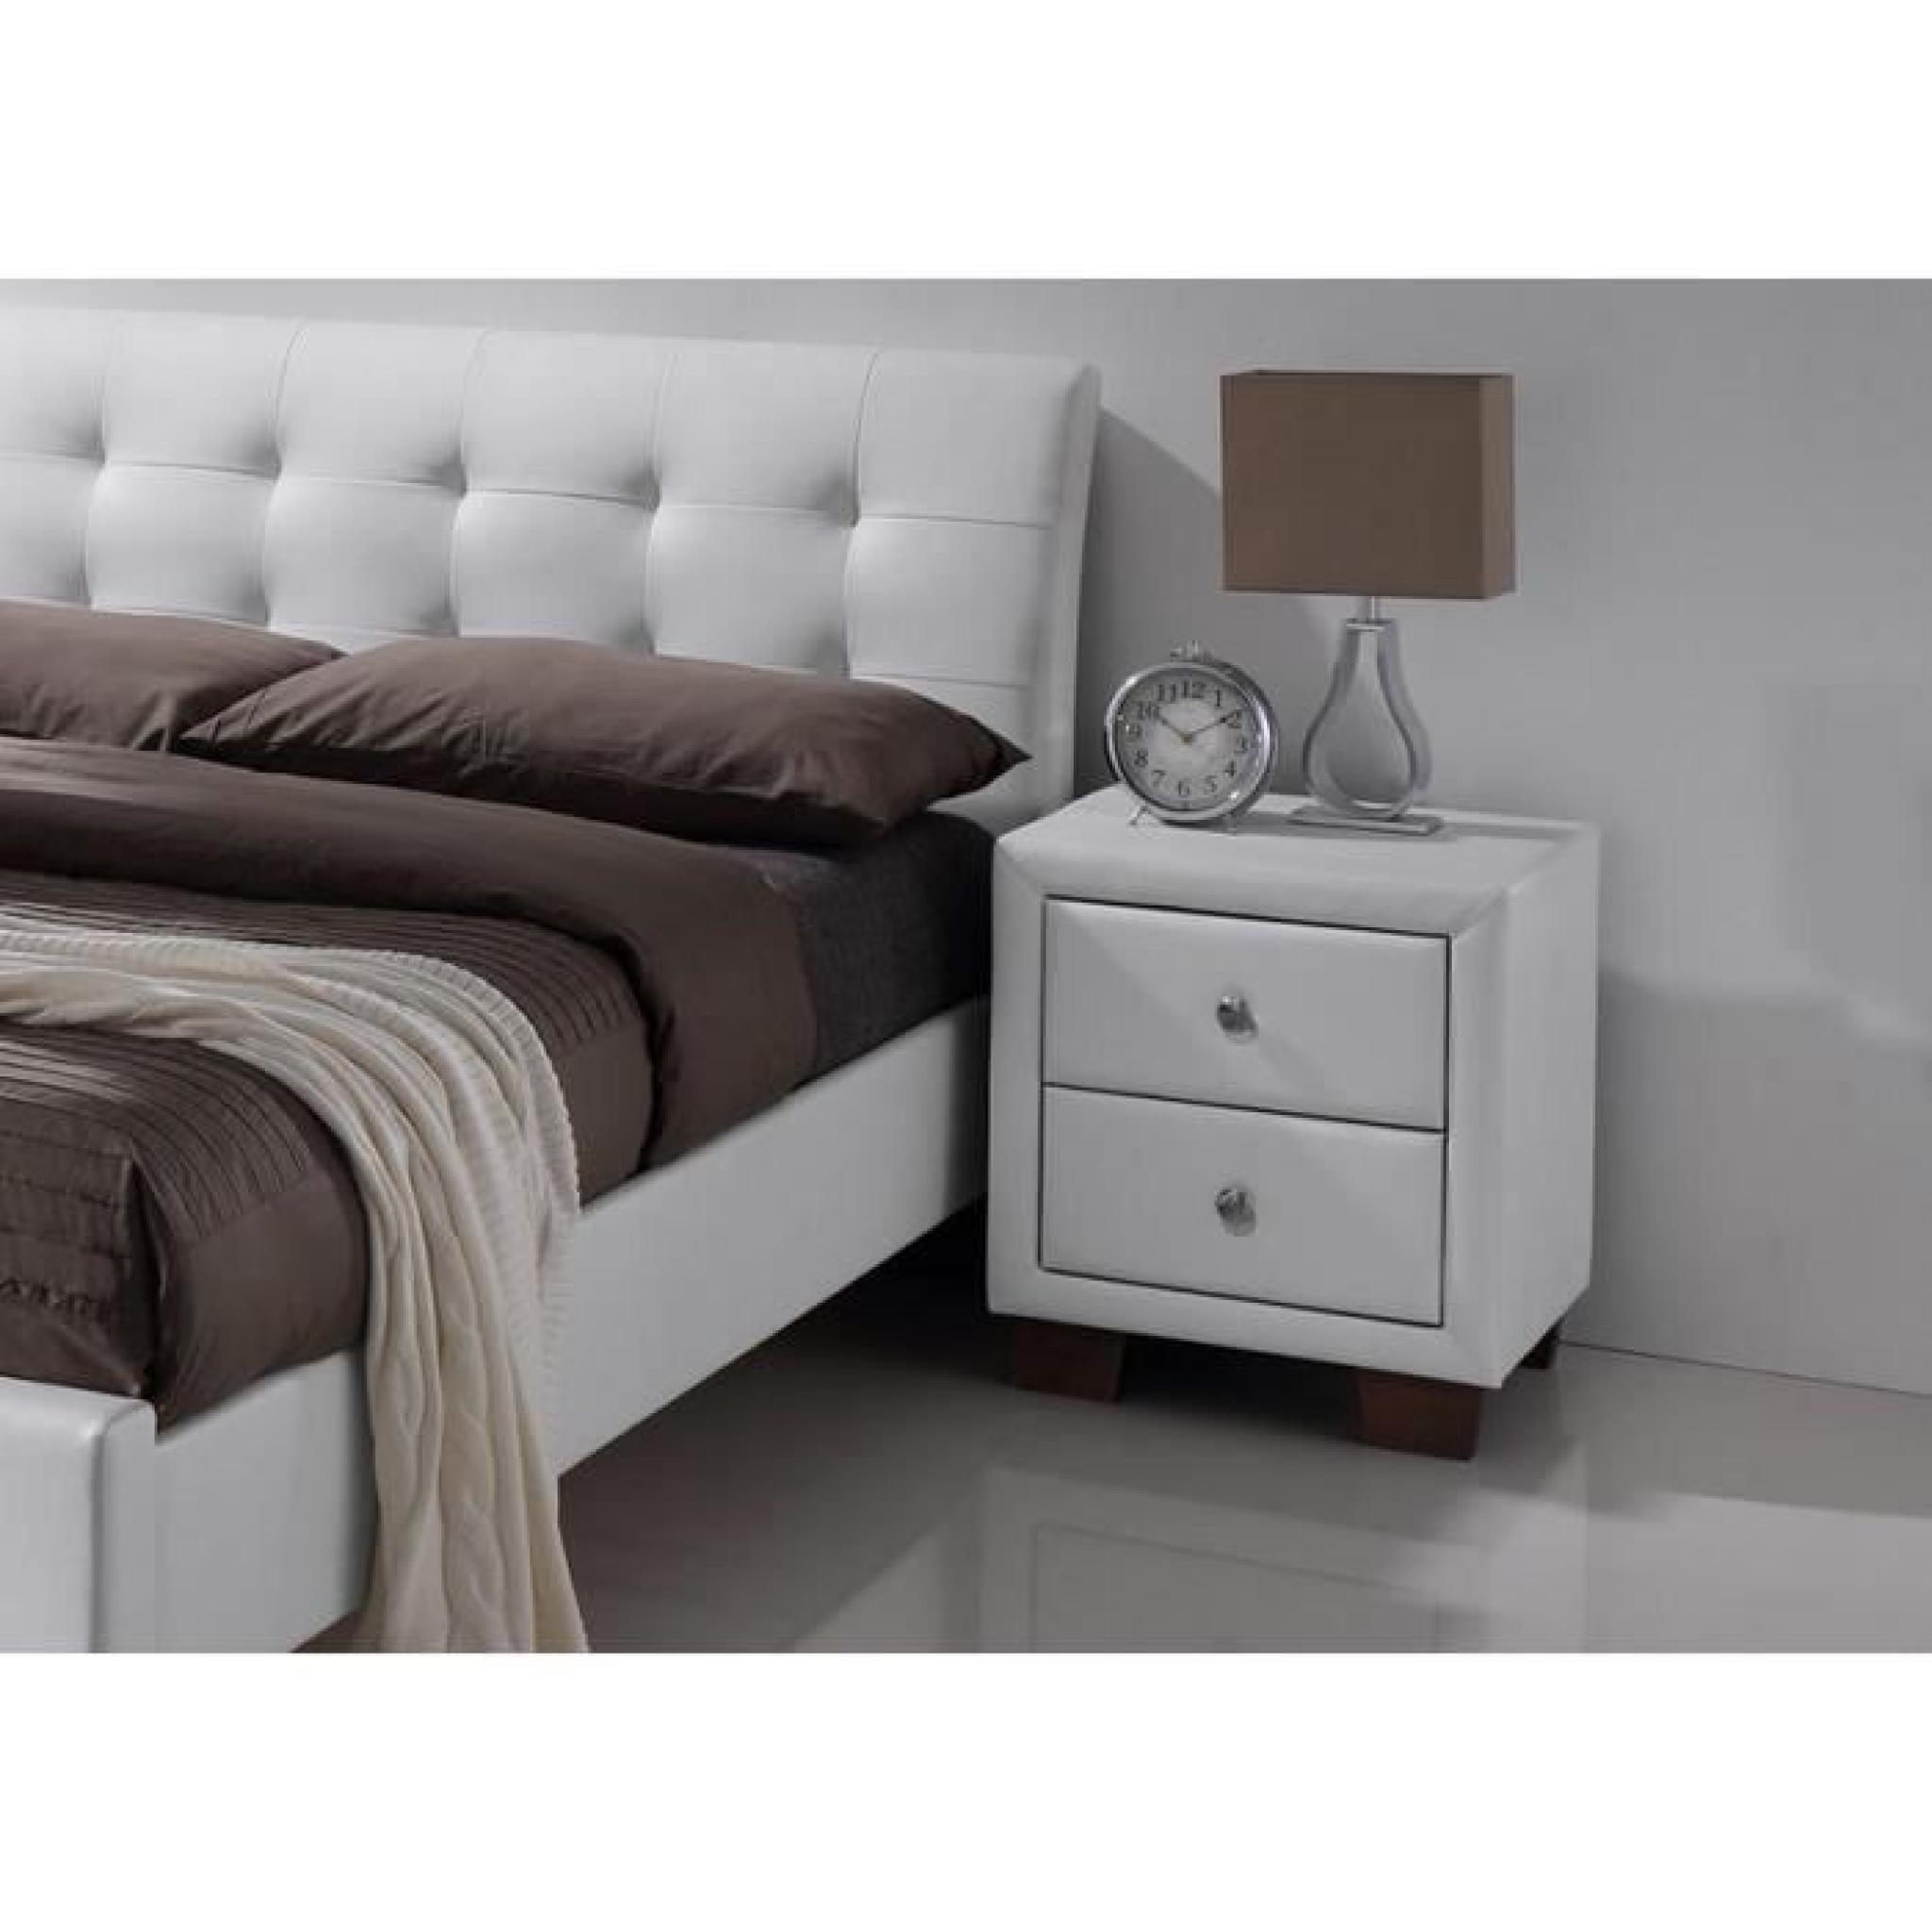 lit simili blanc avec t te de lit samara 140 x 190 achat. Black Bedroom Furniture Sets. Home Design Ideas